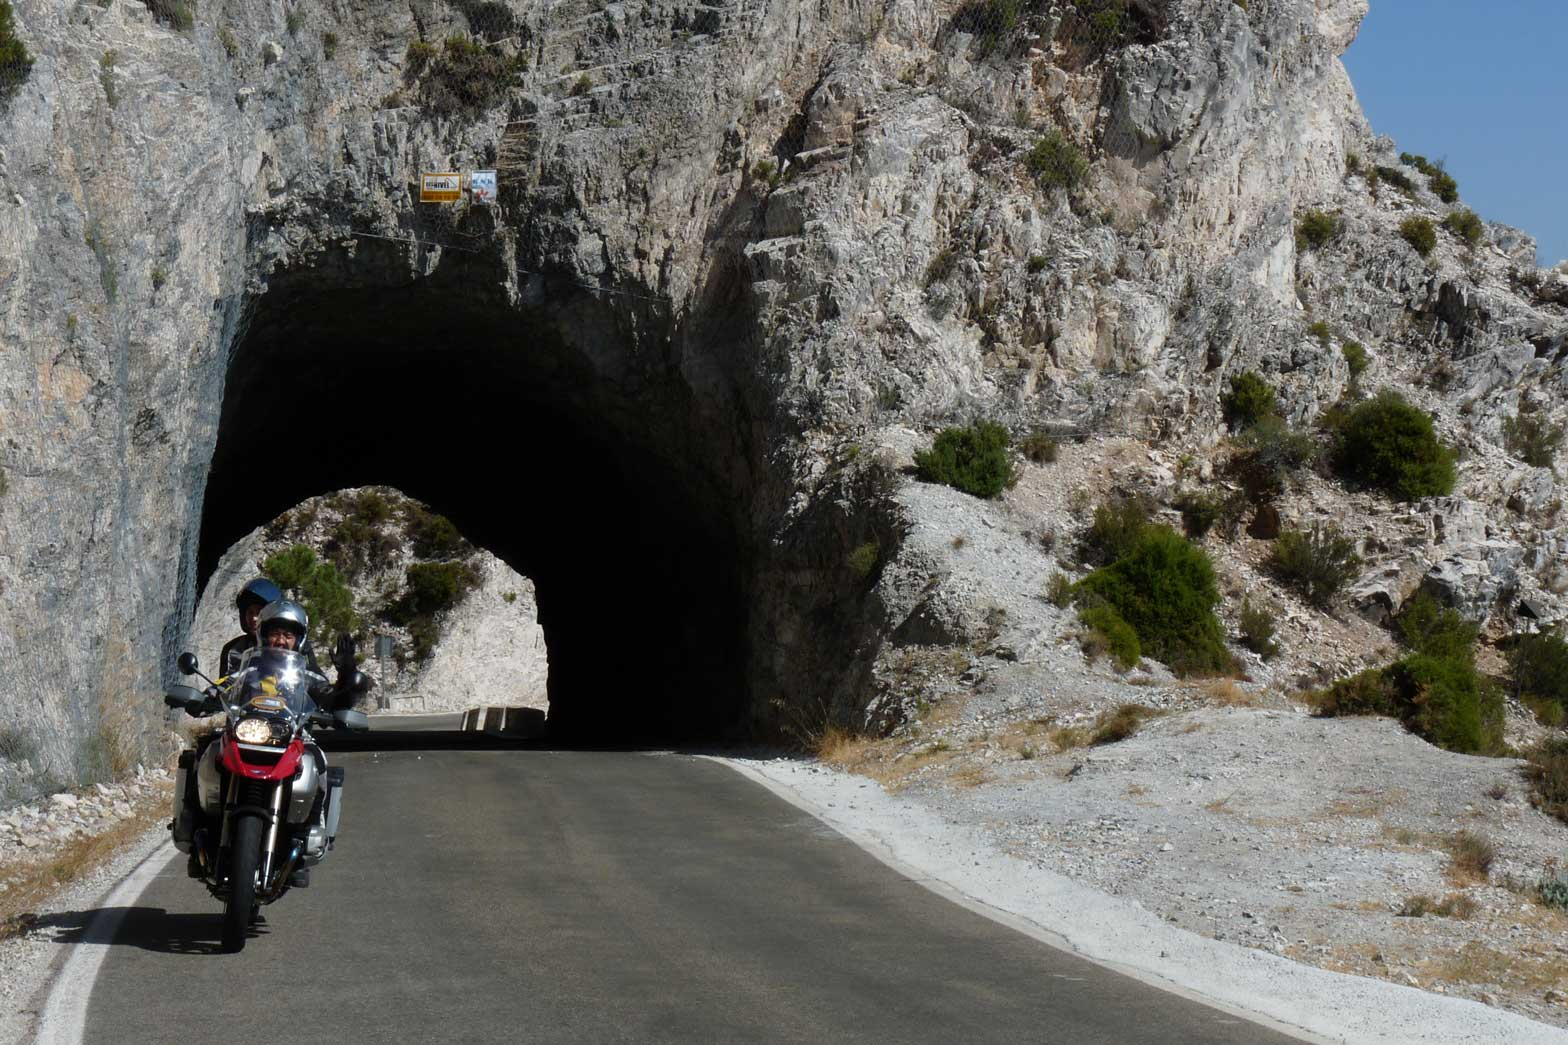 Riding the Andalusian roads